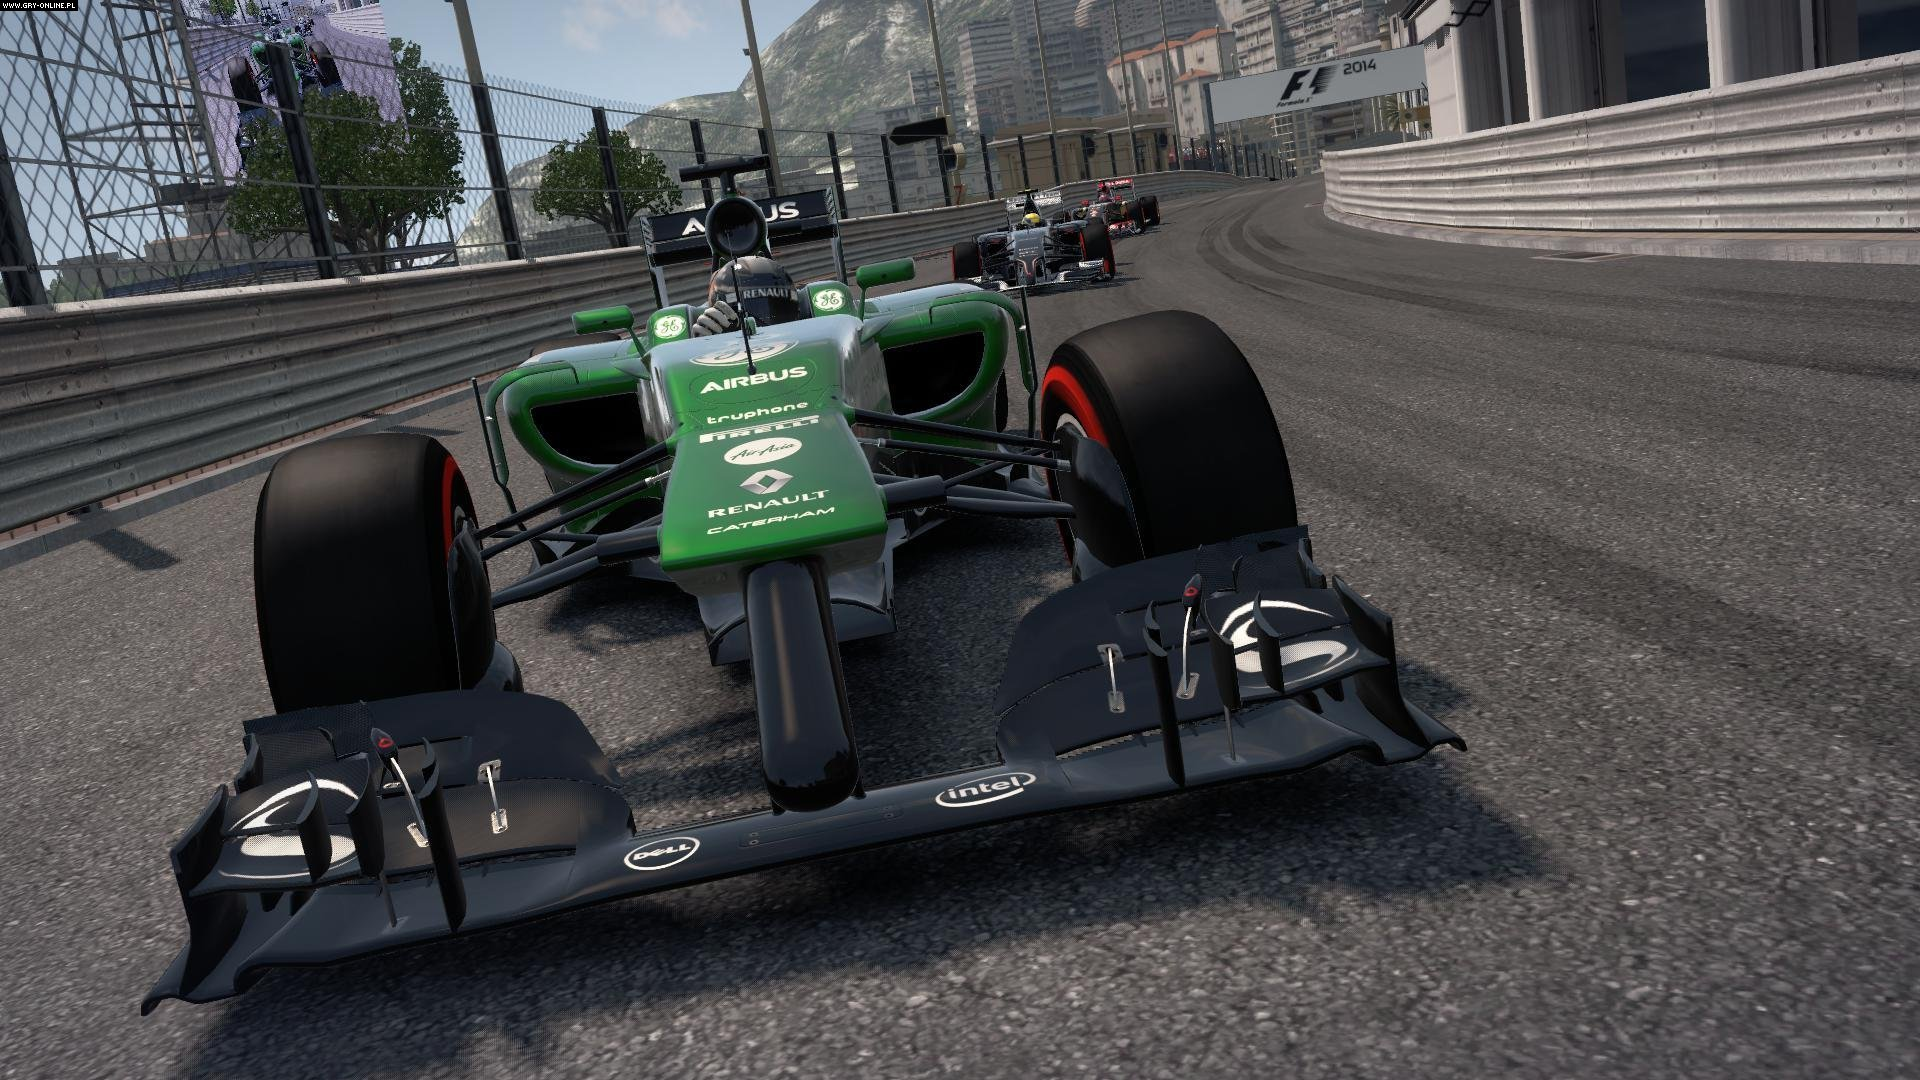 F1 2014 PC, X360, PS3 Gry Screen 12/18, Codemasters Software